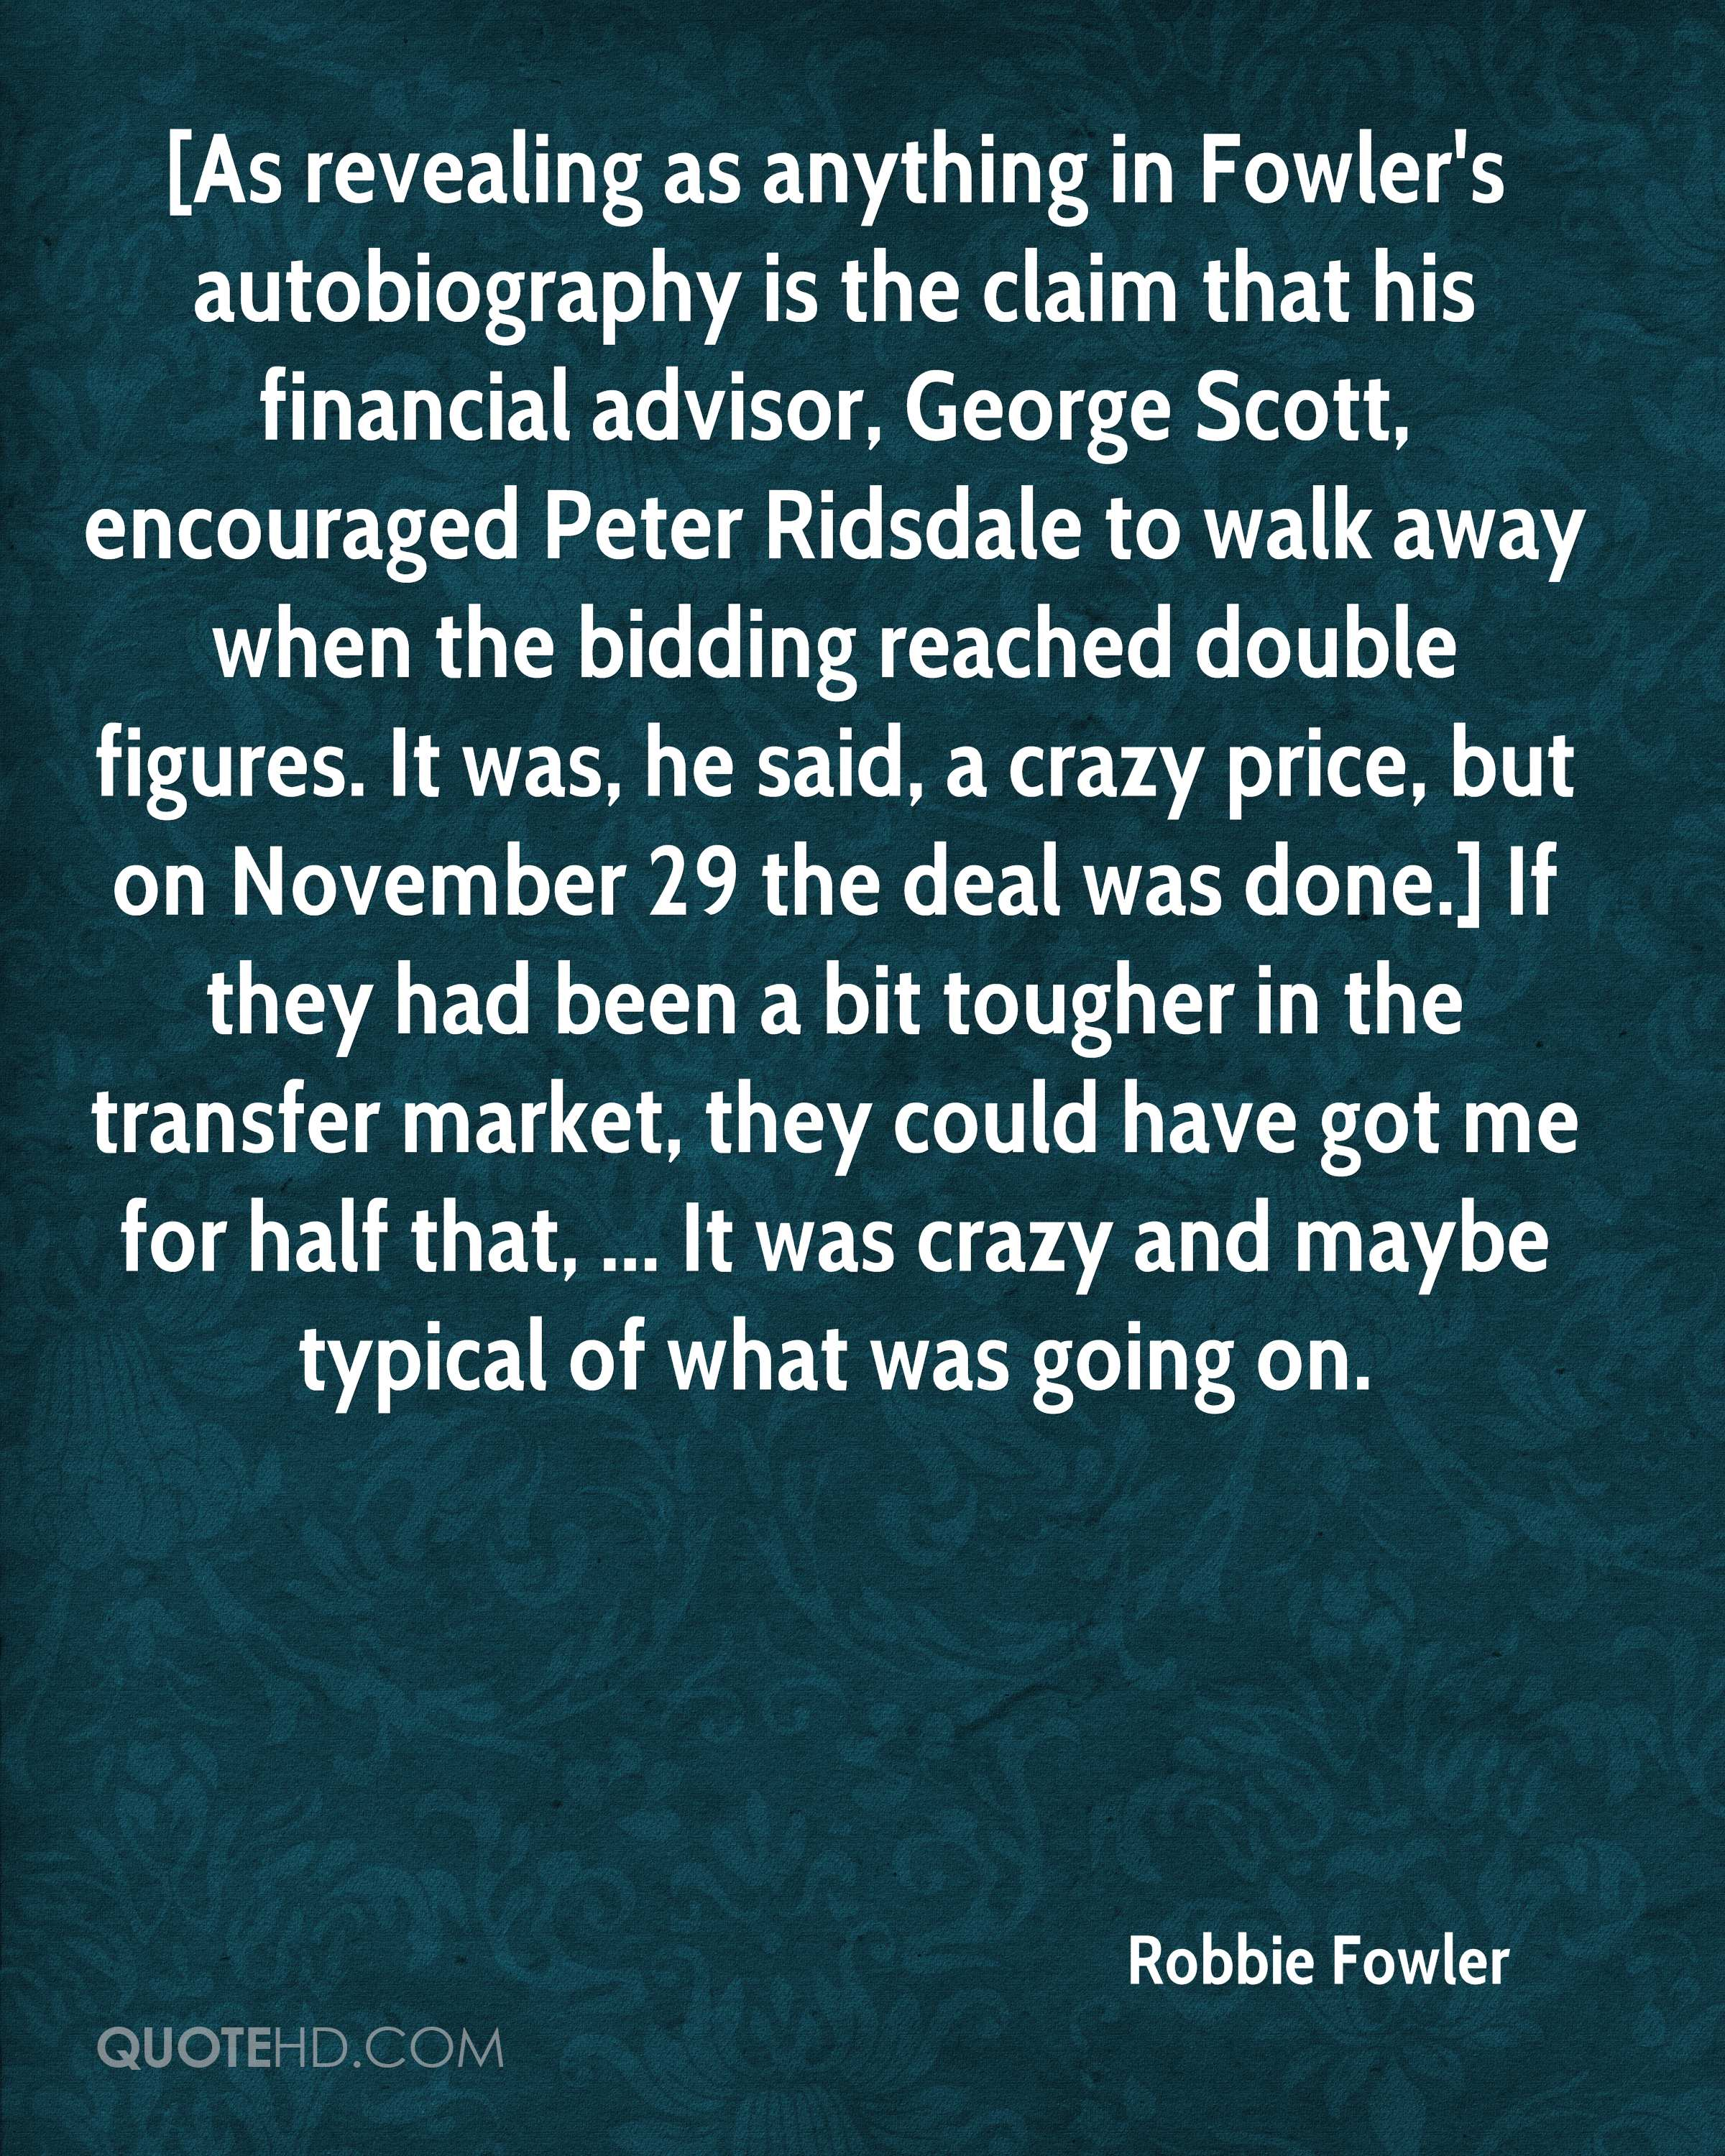 [As revealing as anything in Fowler's autobiography is the claim that his financial advisor, George Scott, encouraged Peter Ridsdale to walk away when the bidding reached double figures. It was, he said, a crazy price, but on November 29 the deal was done.] If they had been a bit tougher in the transfer market, they could have got me for half that, ... It was crazy and maybe typical of what was going on.